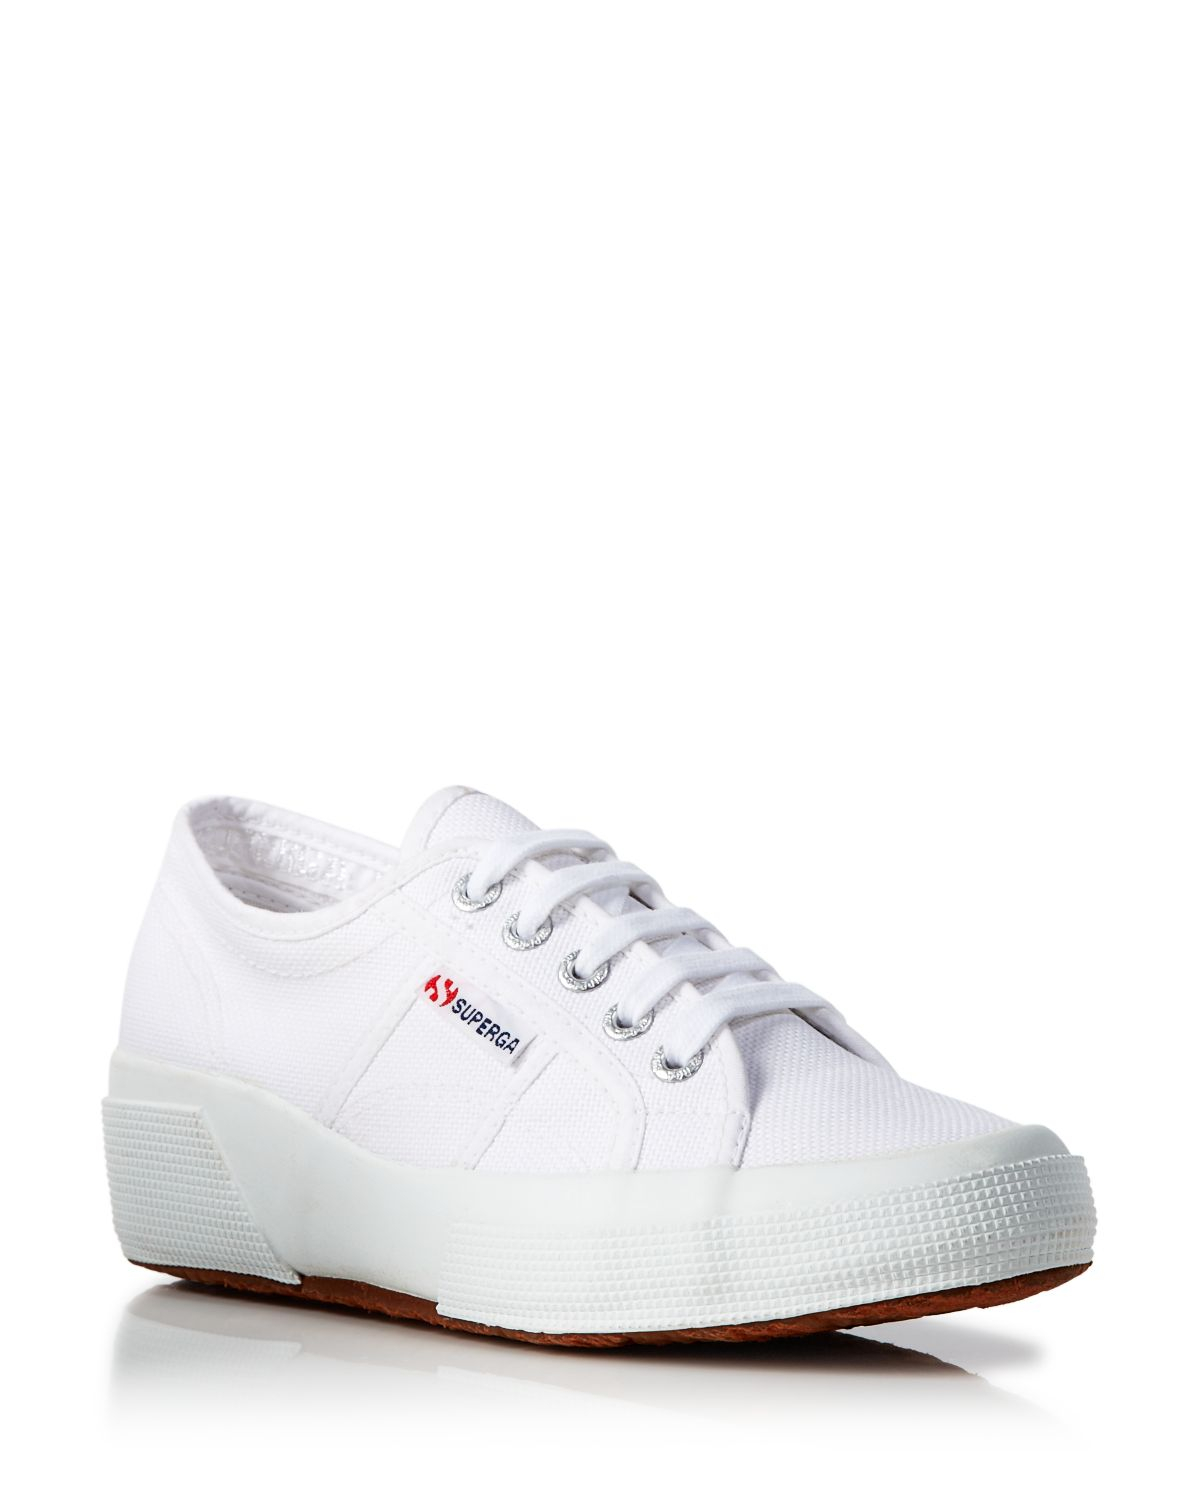 Lyst - Superga Lace Up Sneakers - Hidden Wedge Heel in White 5630a08afe